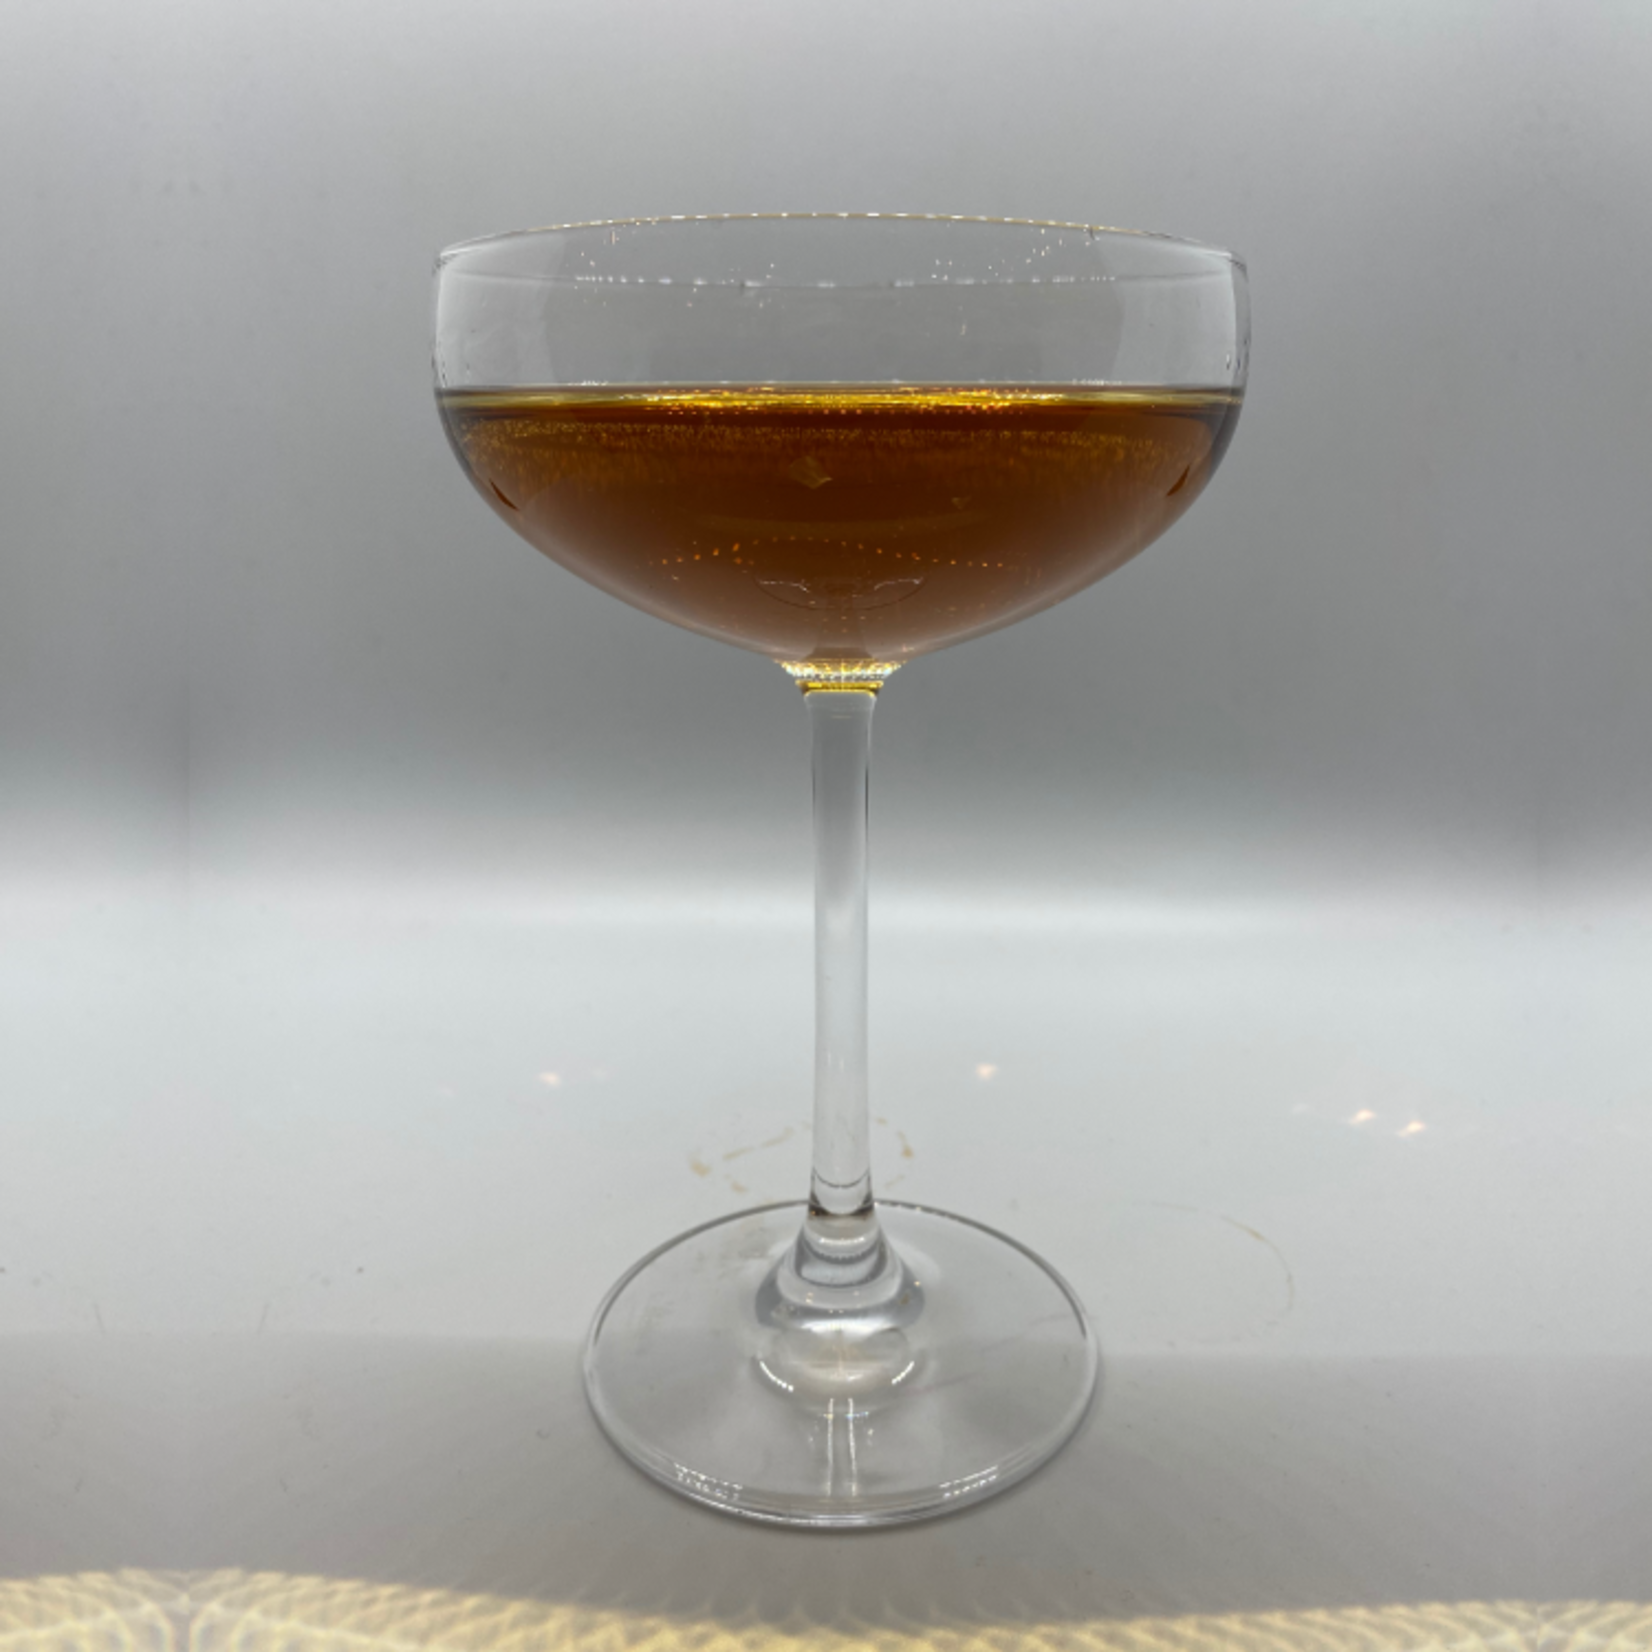 The Wine Bin Corpse Reviver #1 – Cocktail Kit